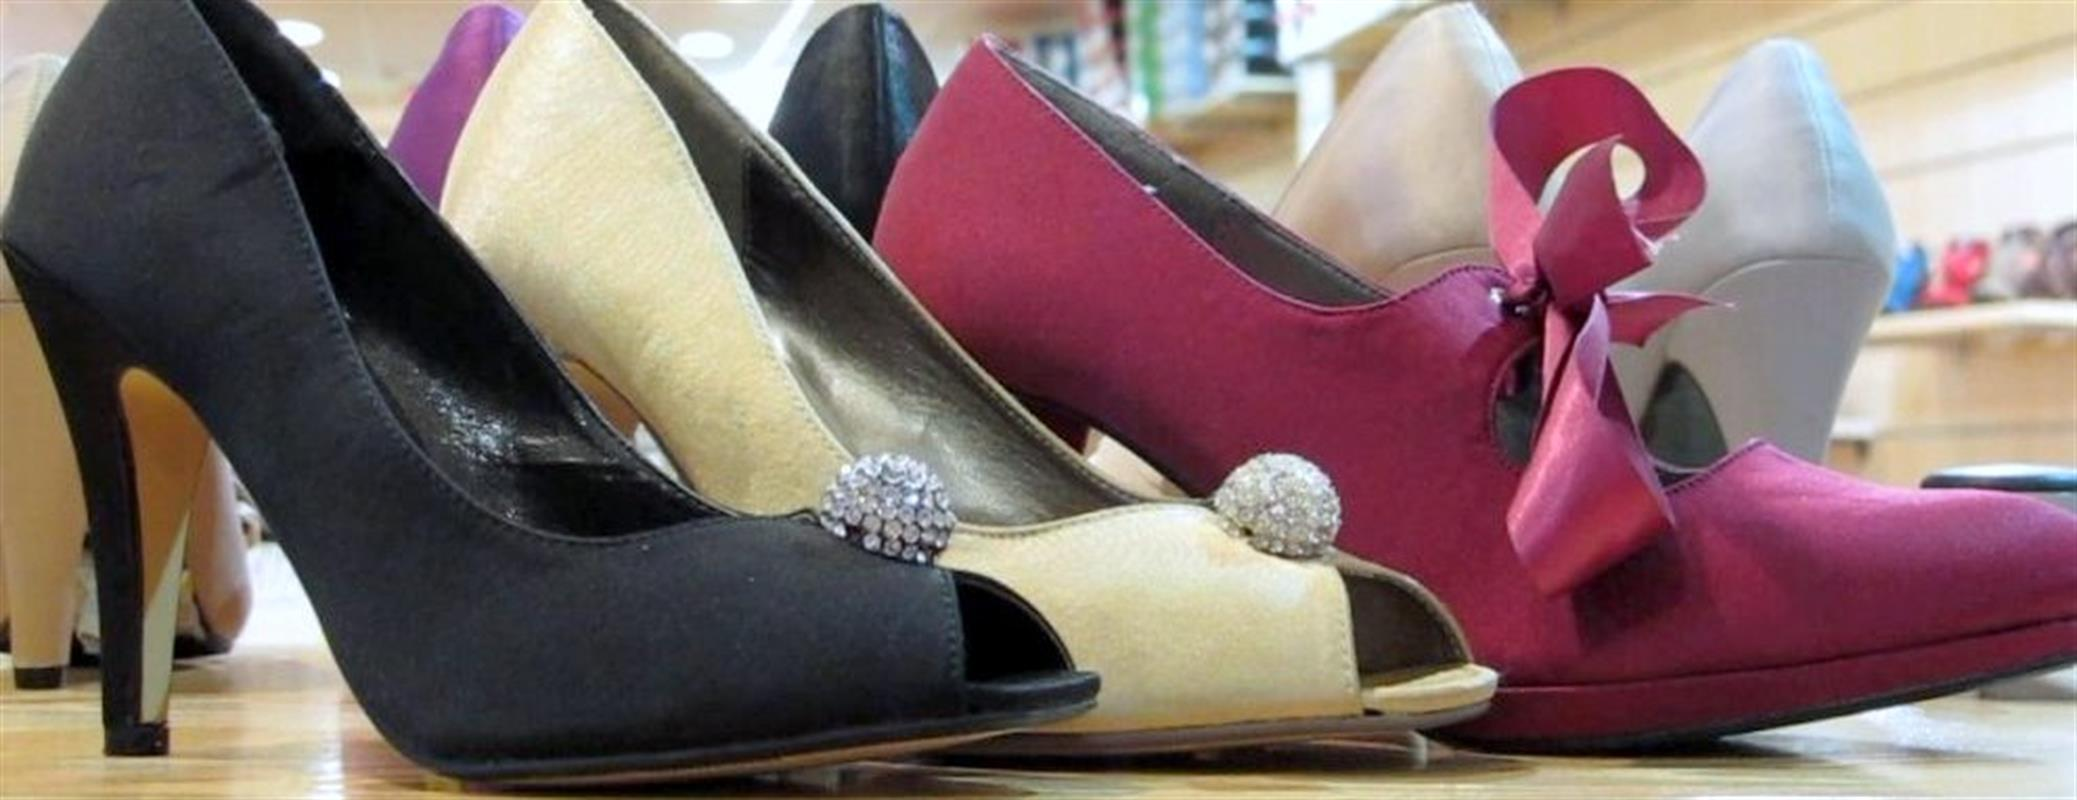 fit shoes a princess for Alicante f6gbmIY7yv